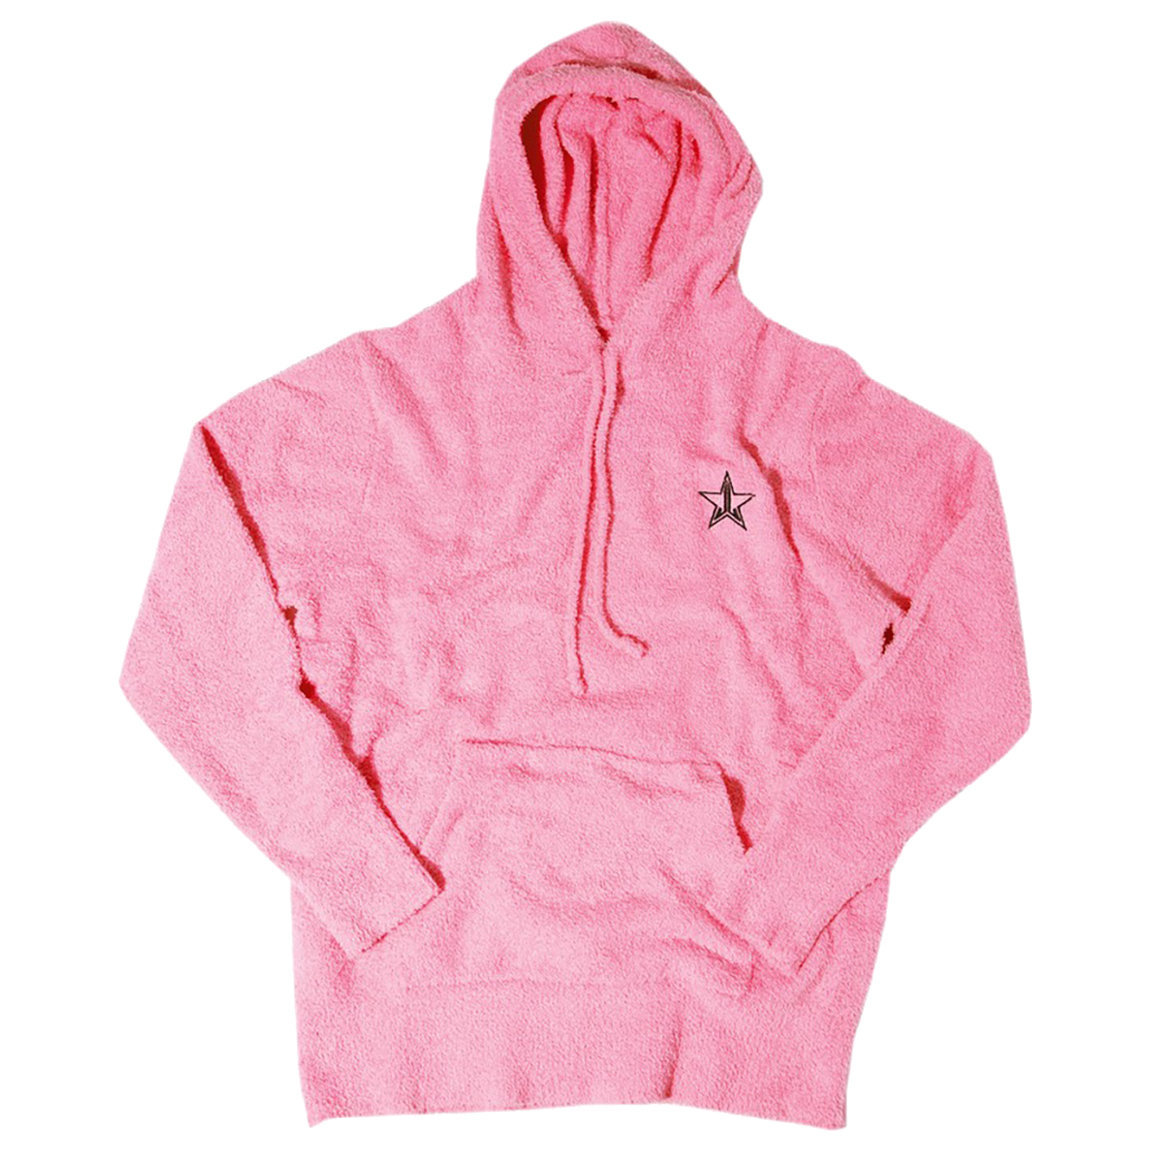 Jeffree Star Cosmetics Pink Teddy Pullover Small alternative view 1 - product swatch.